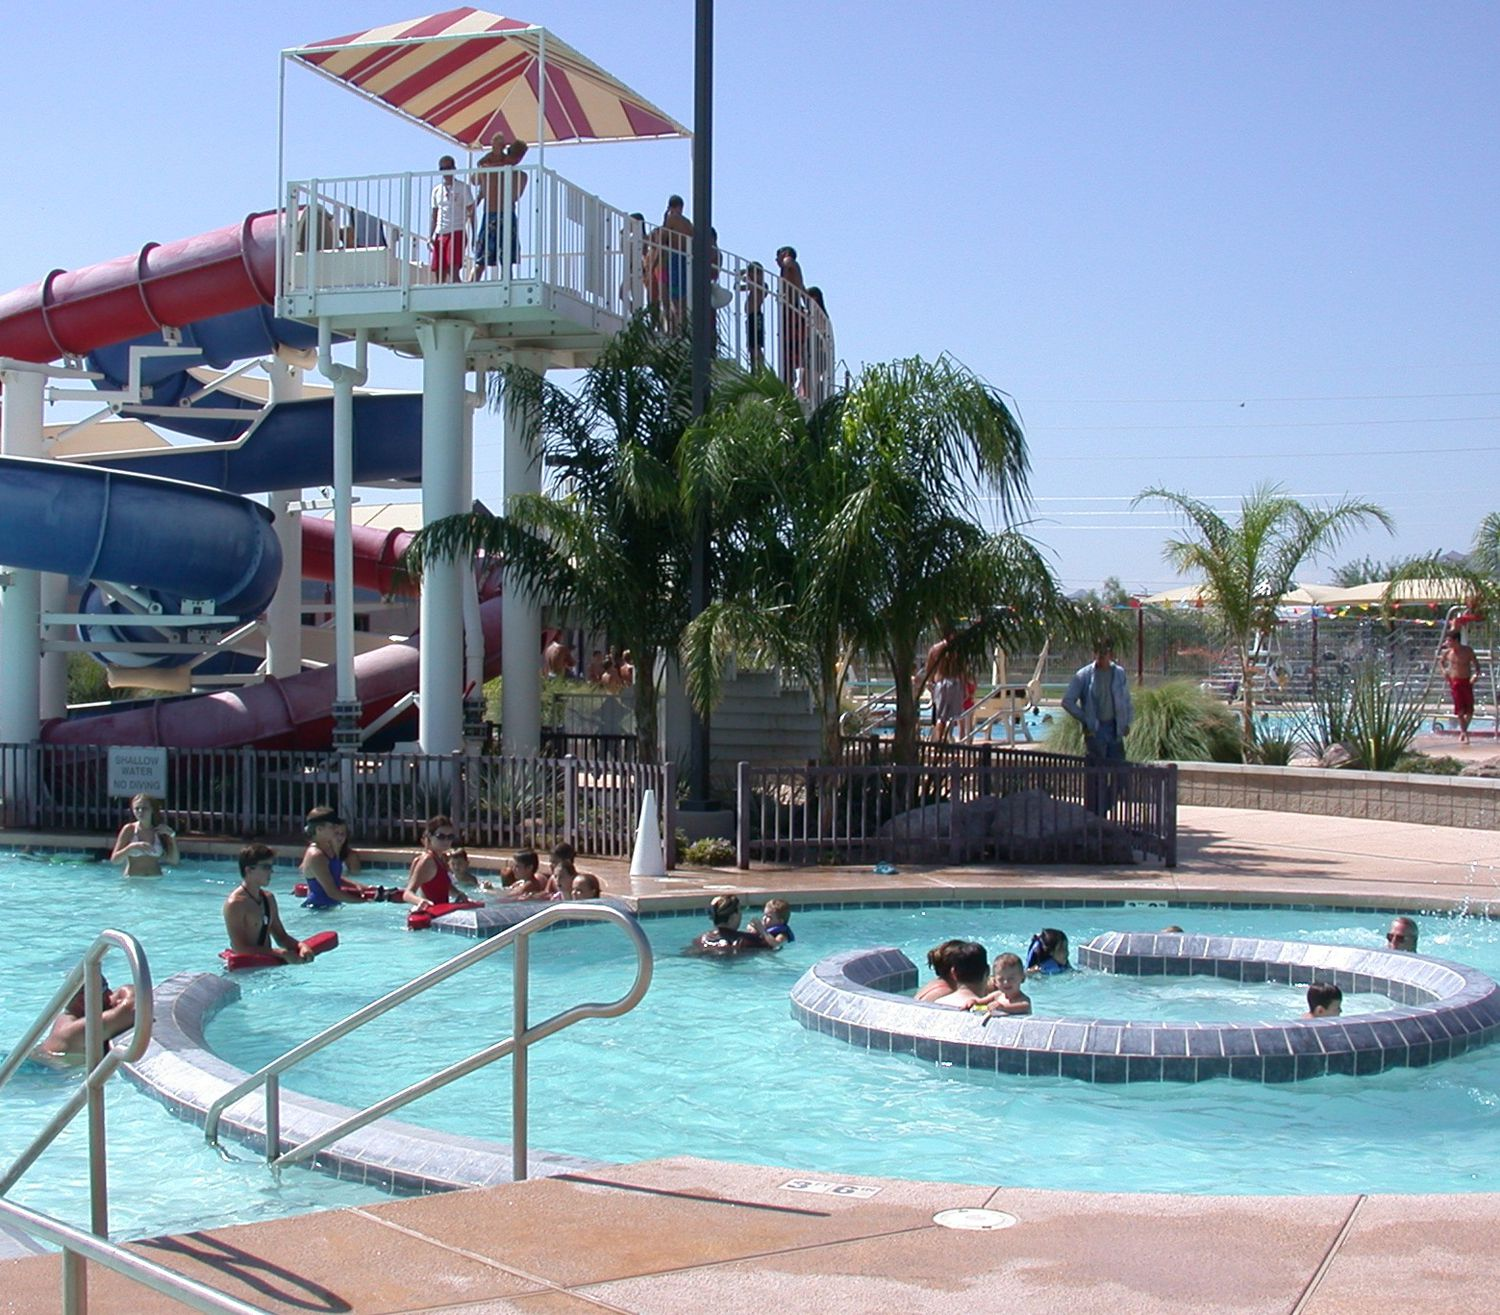 Public swimming pools in greater phoenix cities for Public swimming pools locations maine